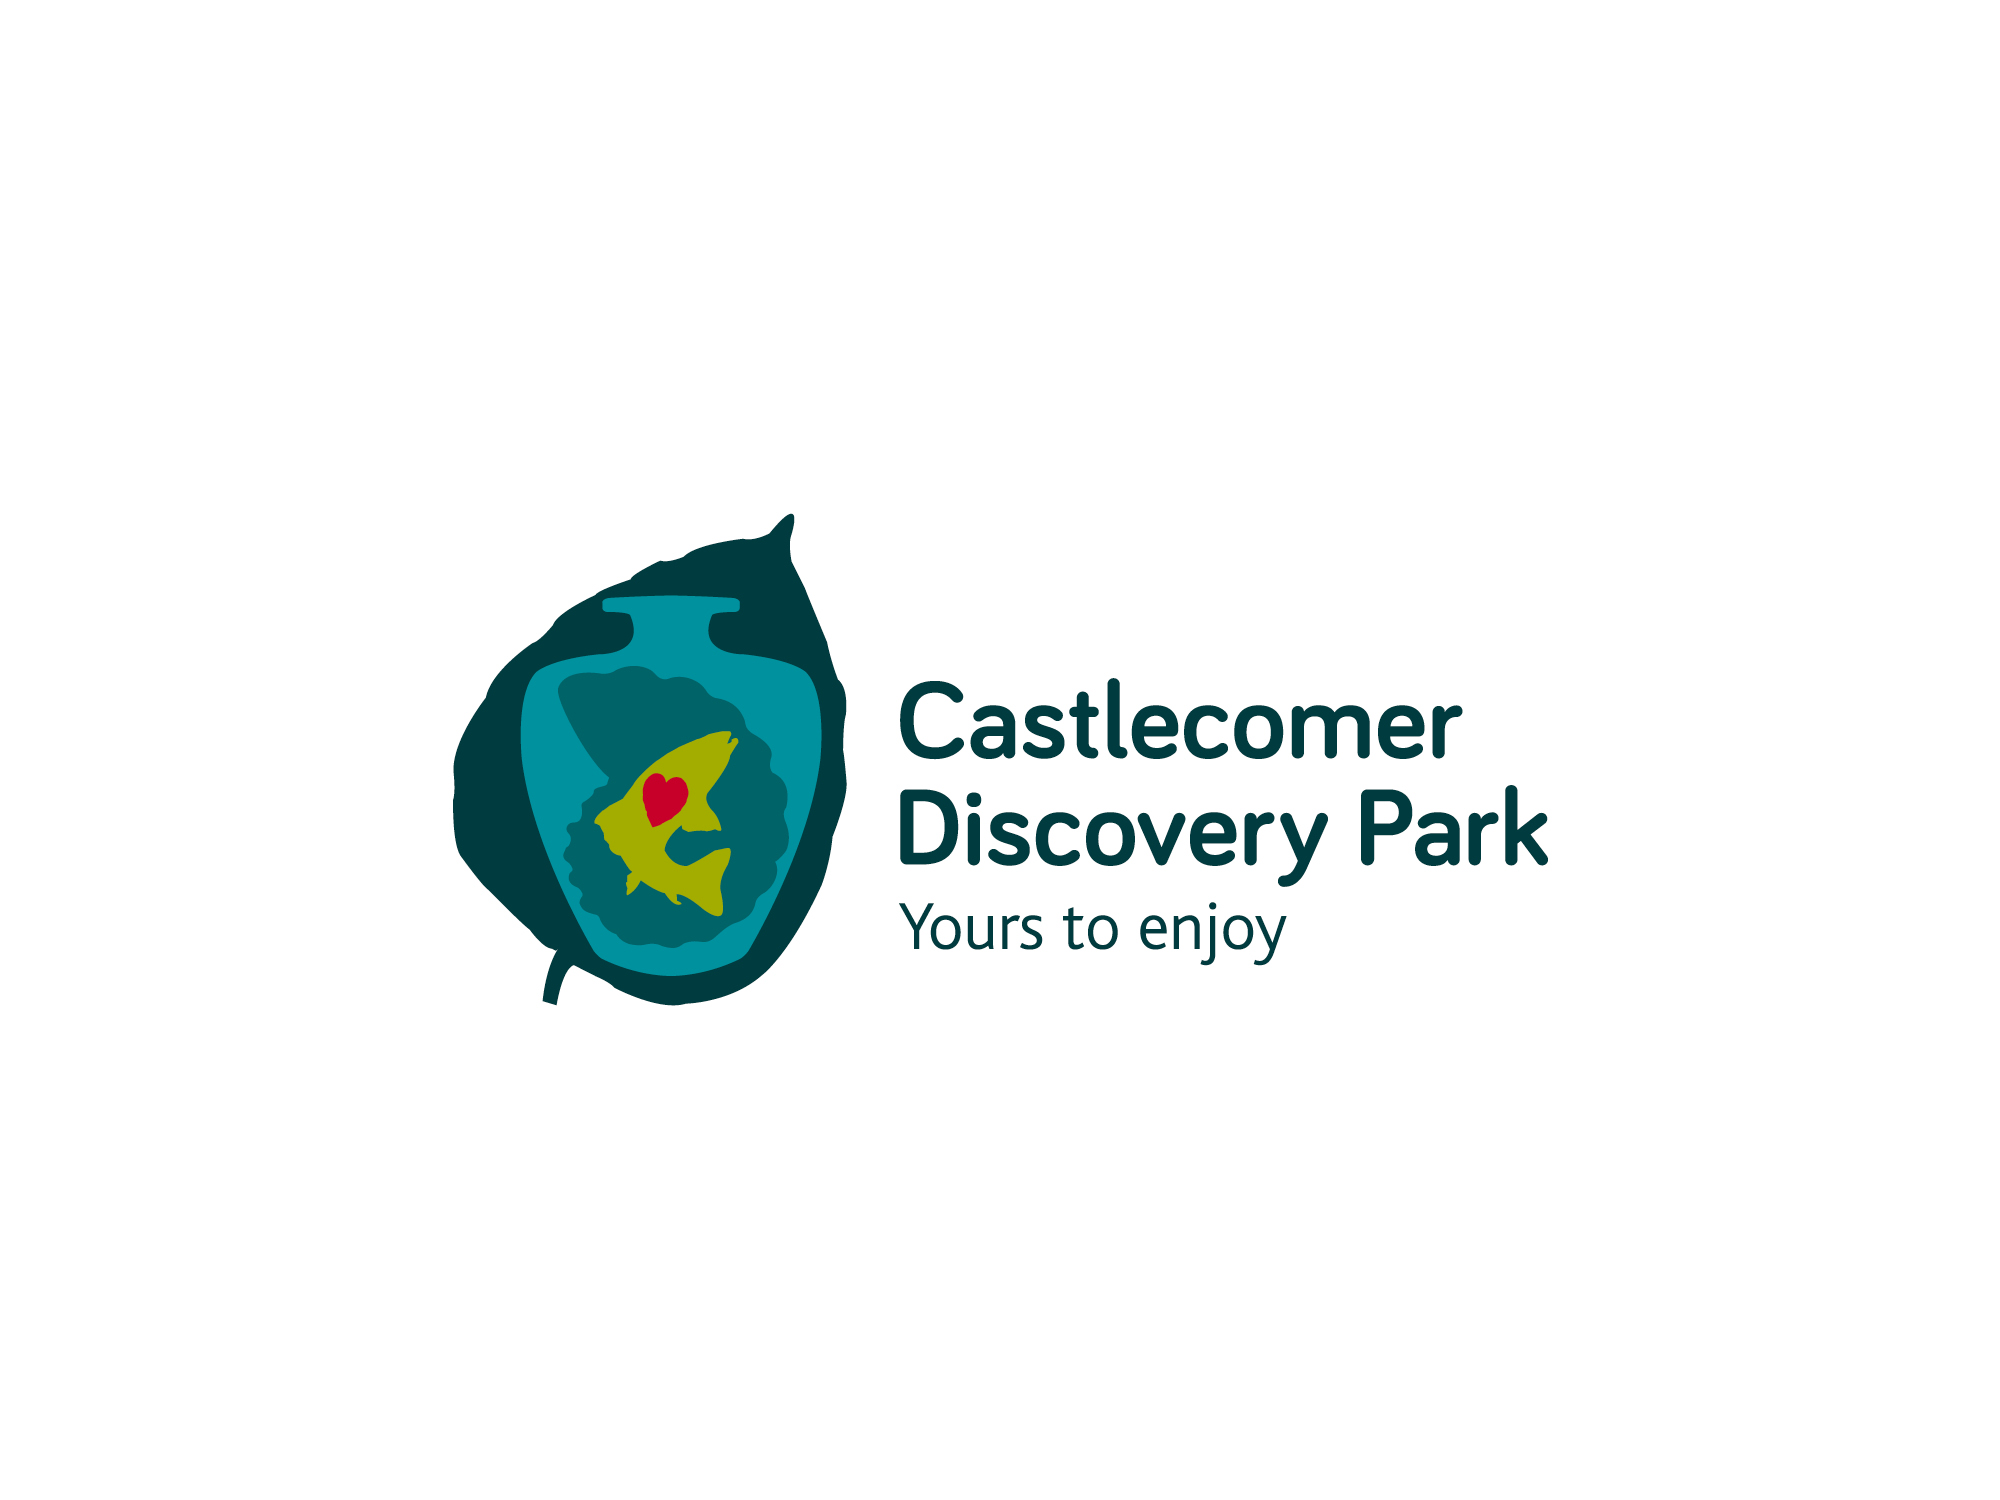 Cover image: Castlecomer Discovery Park (2012)